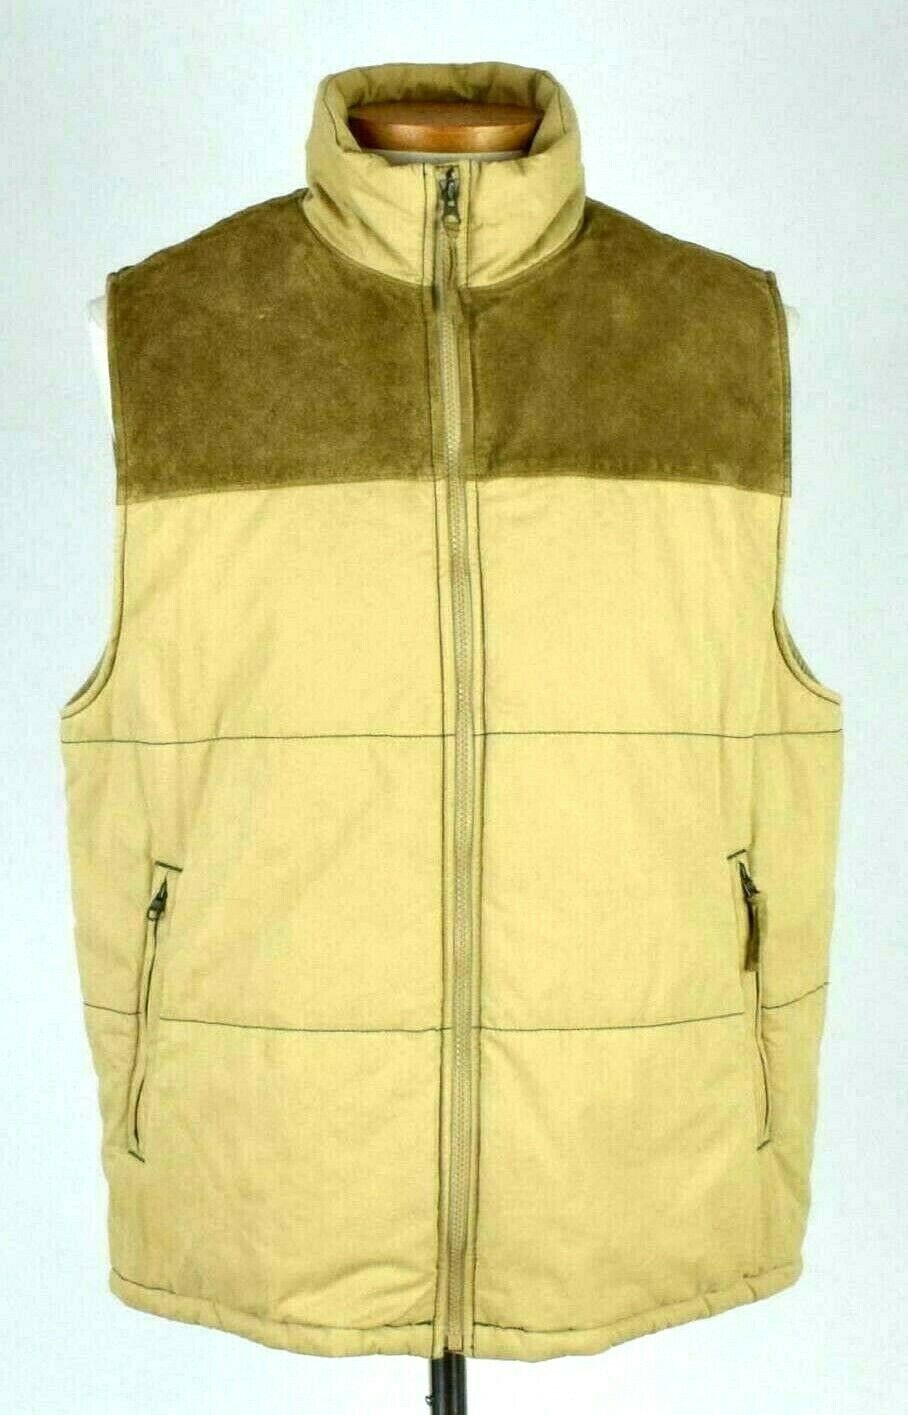 Primary image for GAP Khaki Tan Cotton & Suede Leather Puffer Vest Sleeveless Jacket Mens Size L